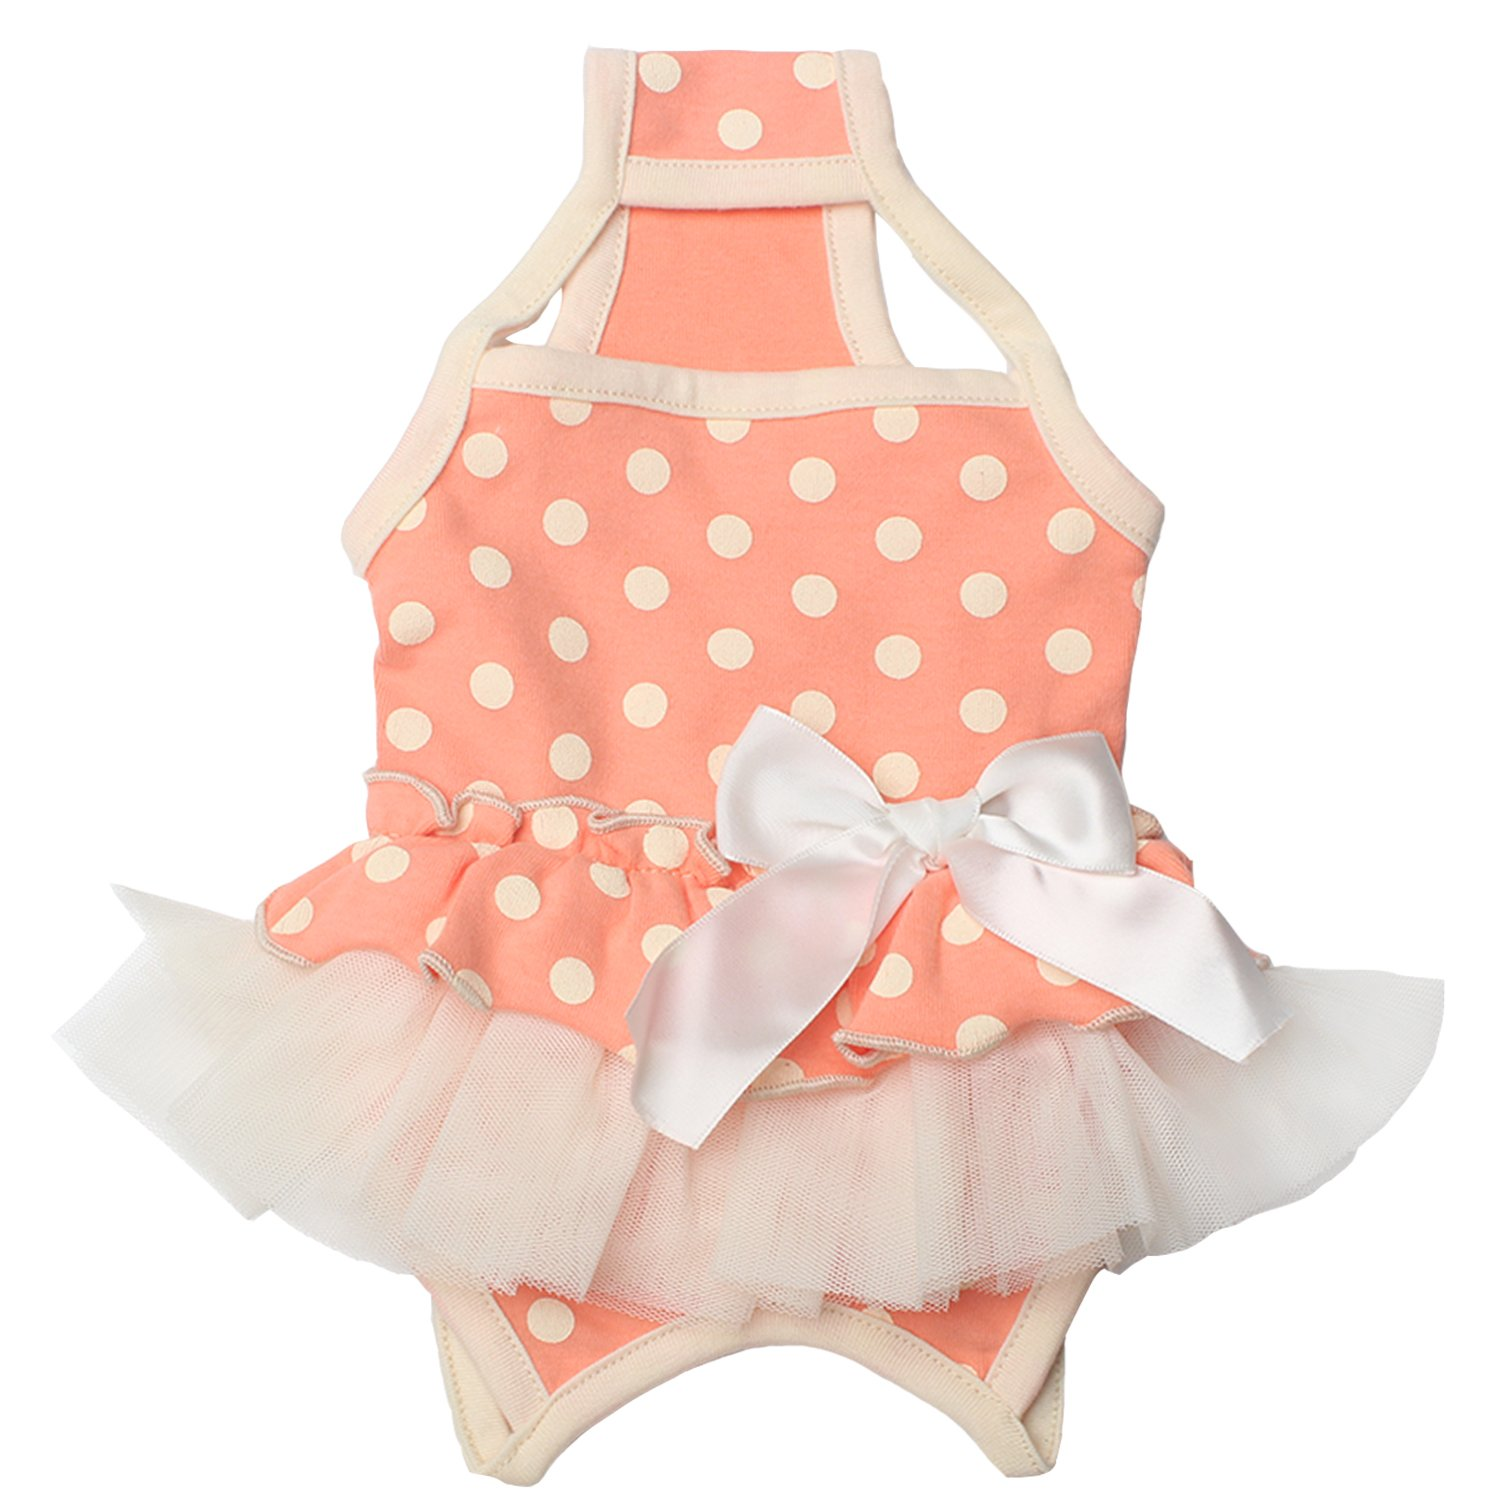 TONY HOBY Pet Dog Summer Braces Dresses Shirts Dog Skirts Suspenders With Cute Polka Dots For Small Dogs